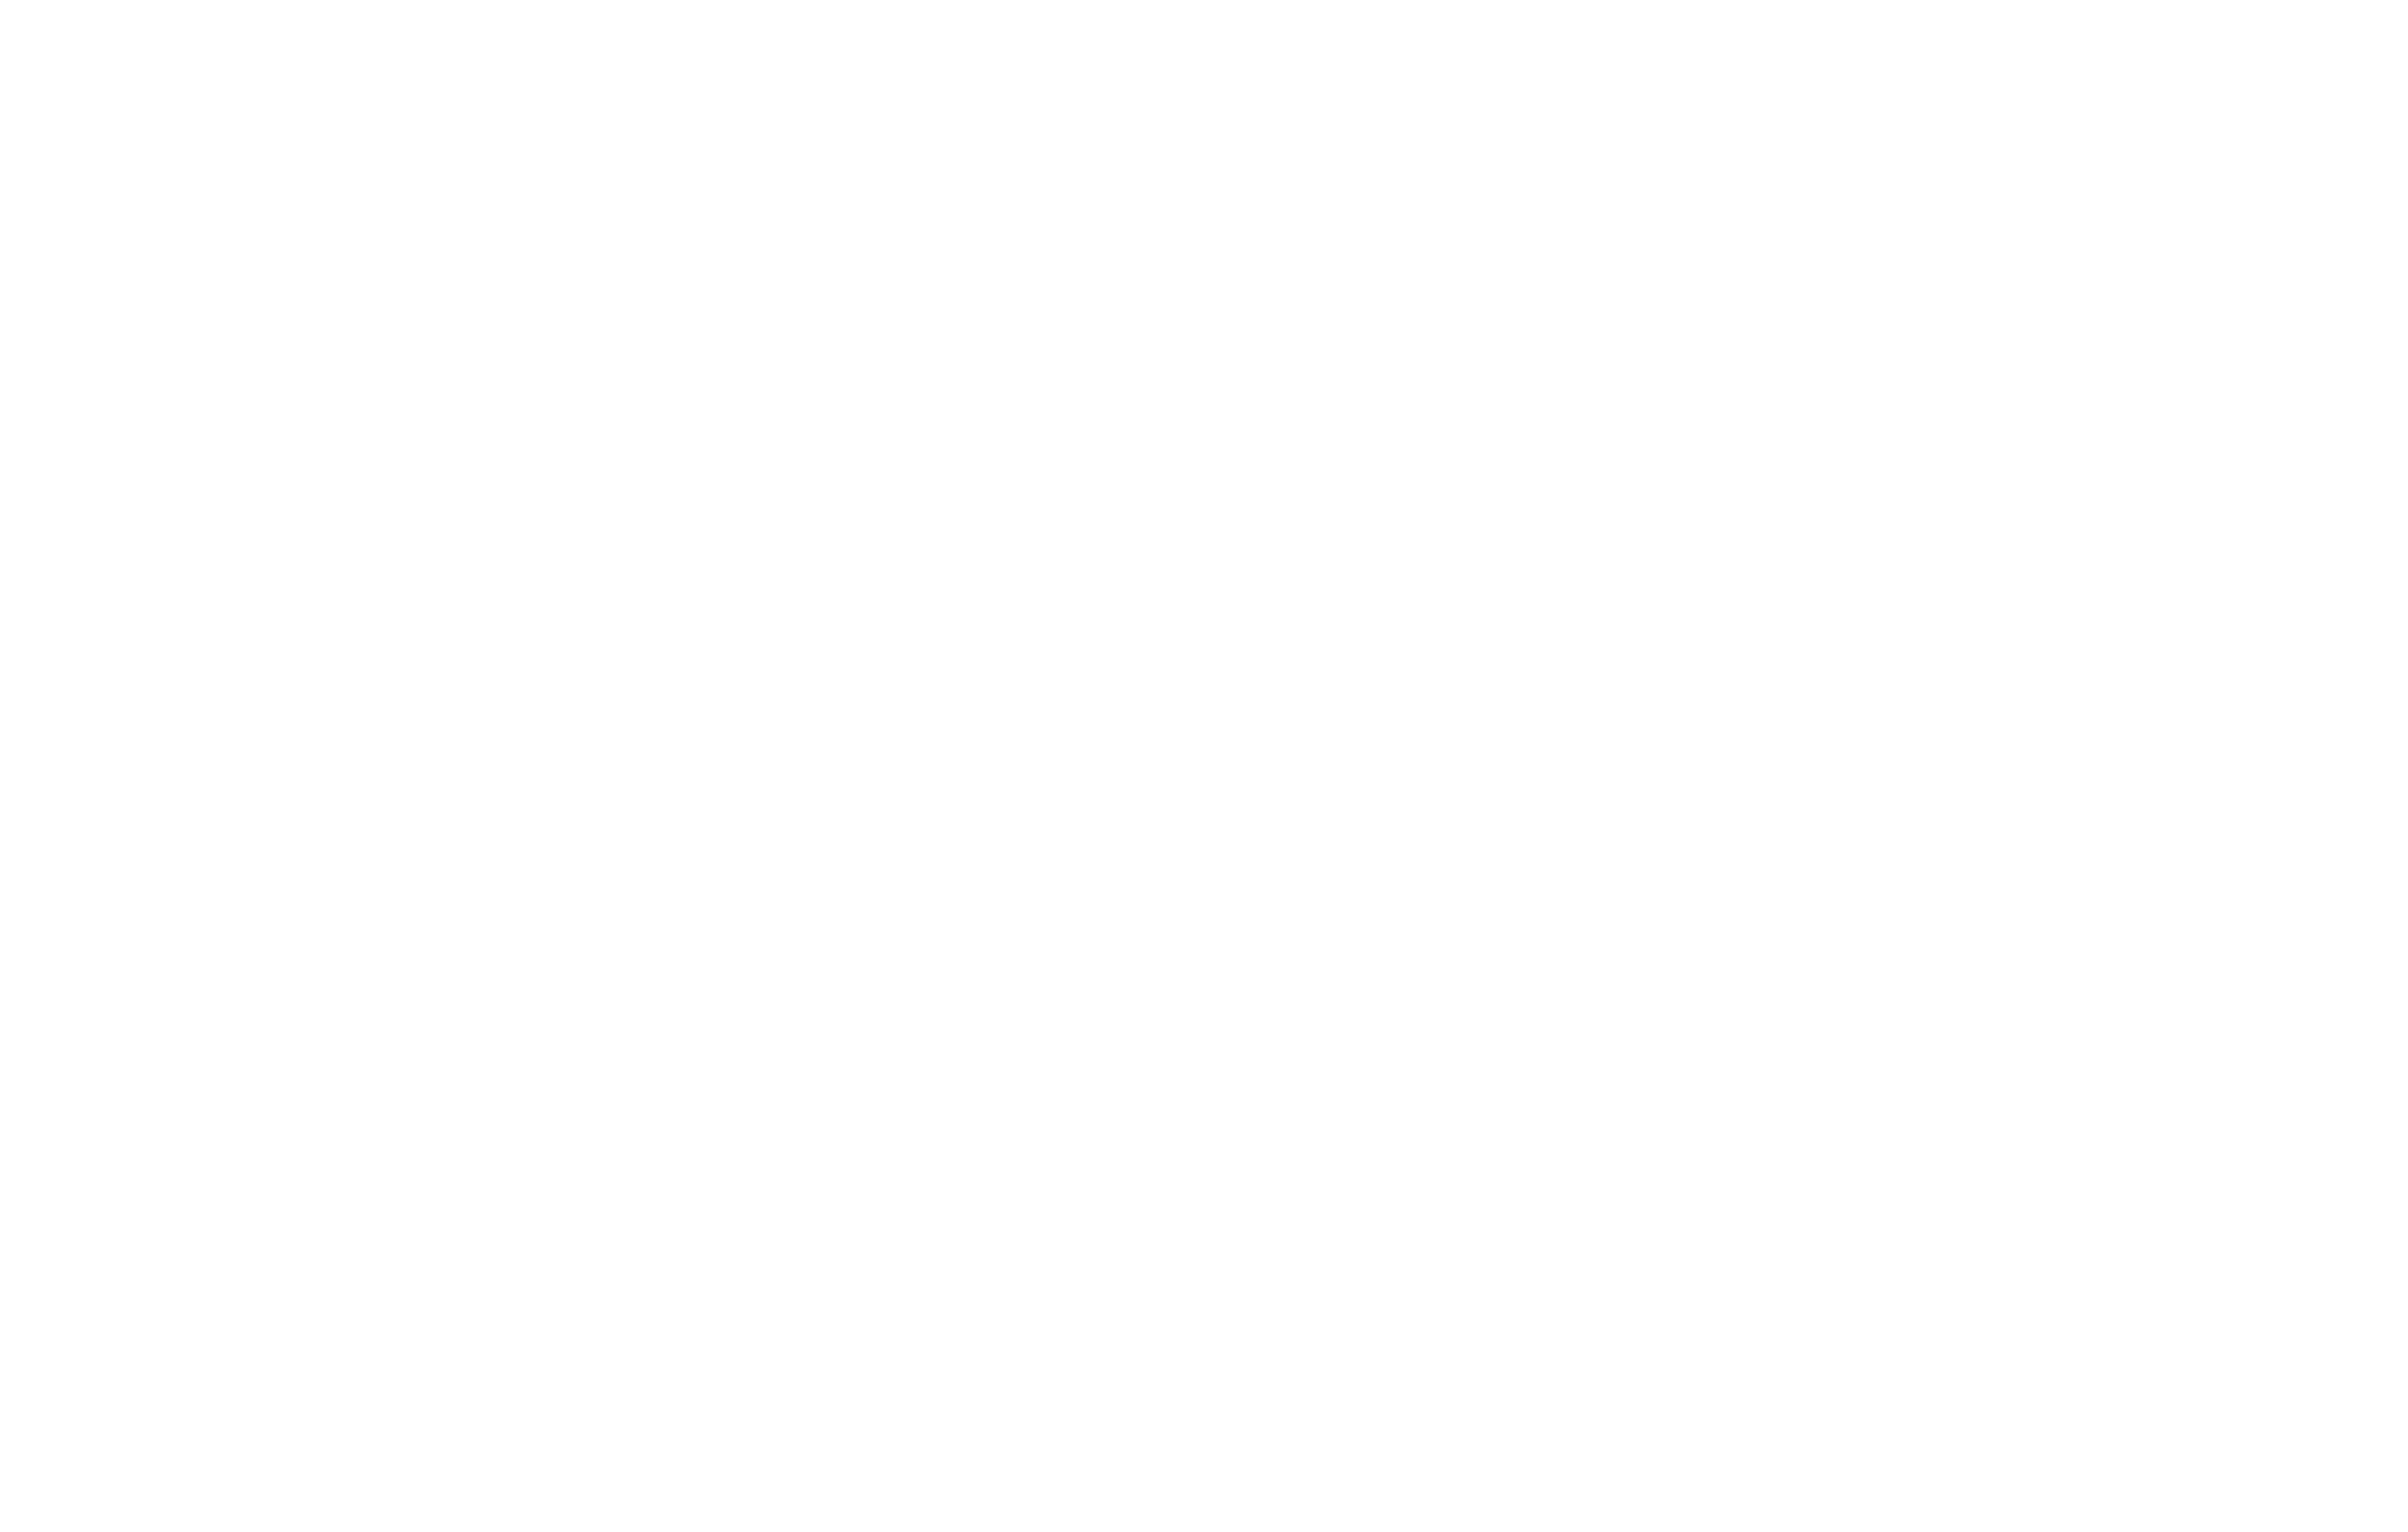 Project Awesome